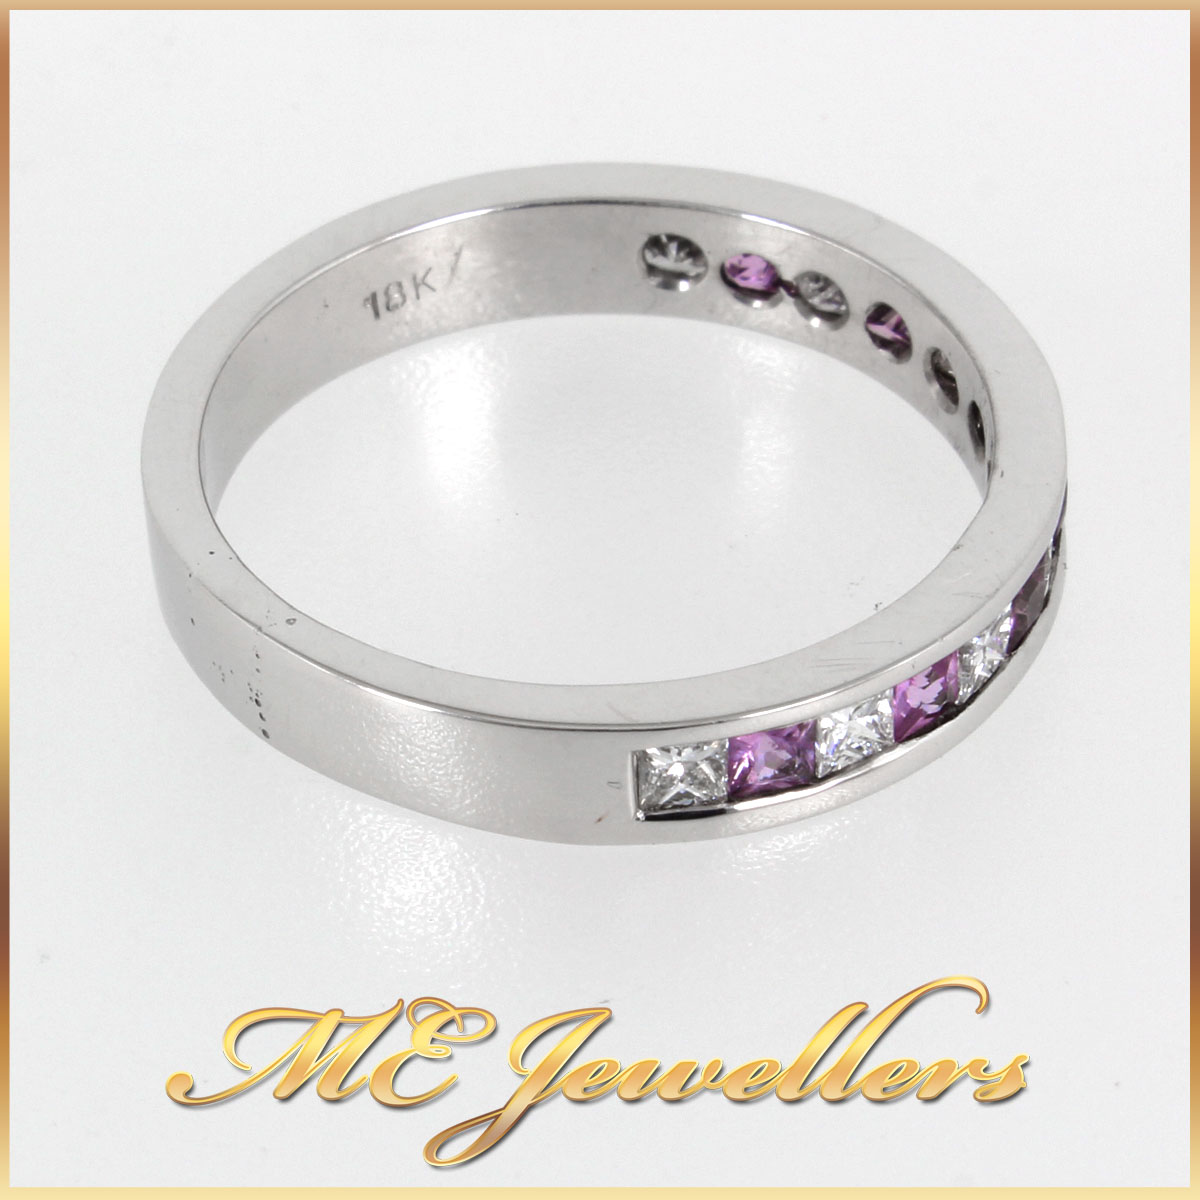 18K White Gold Band With Pink Sapphire and Diamonds